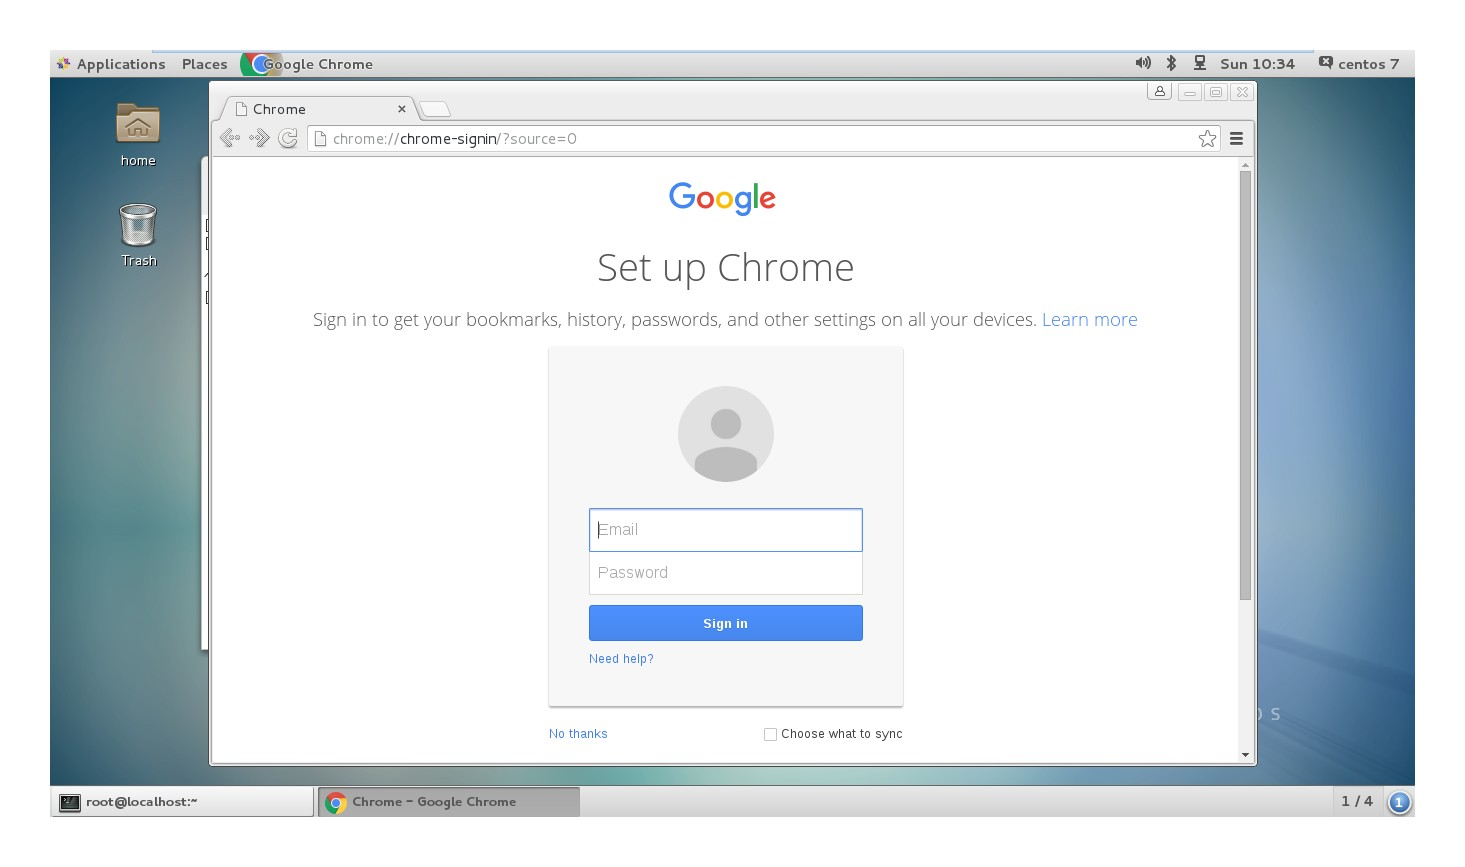 How to install Google Chrome on CentOS/Red hat (RHEL) 7